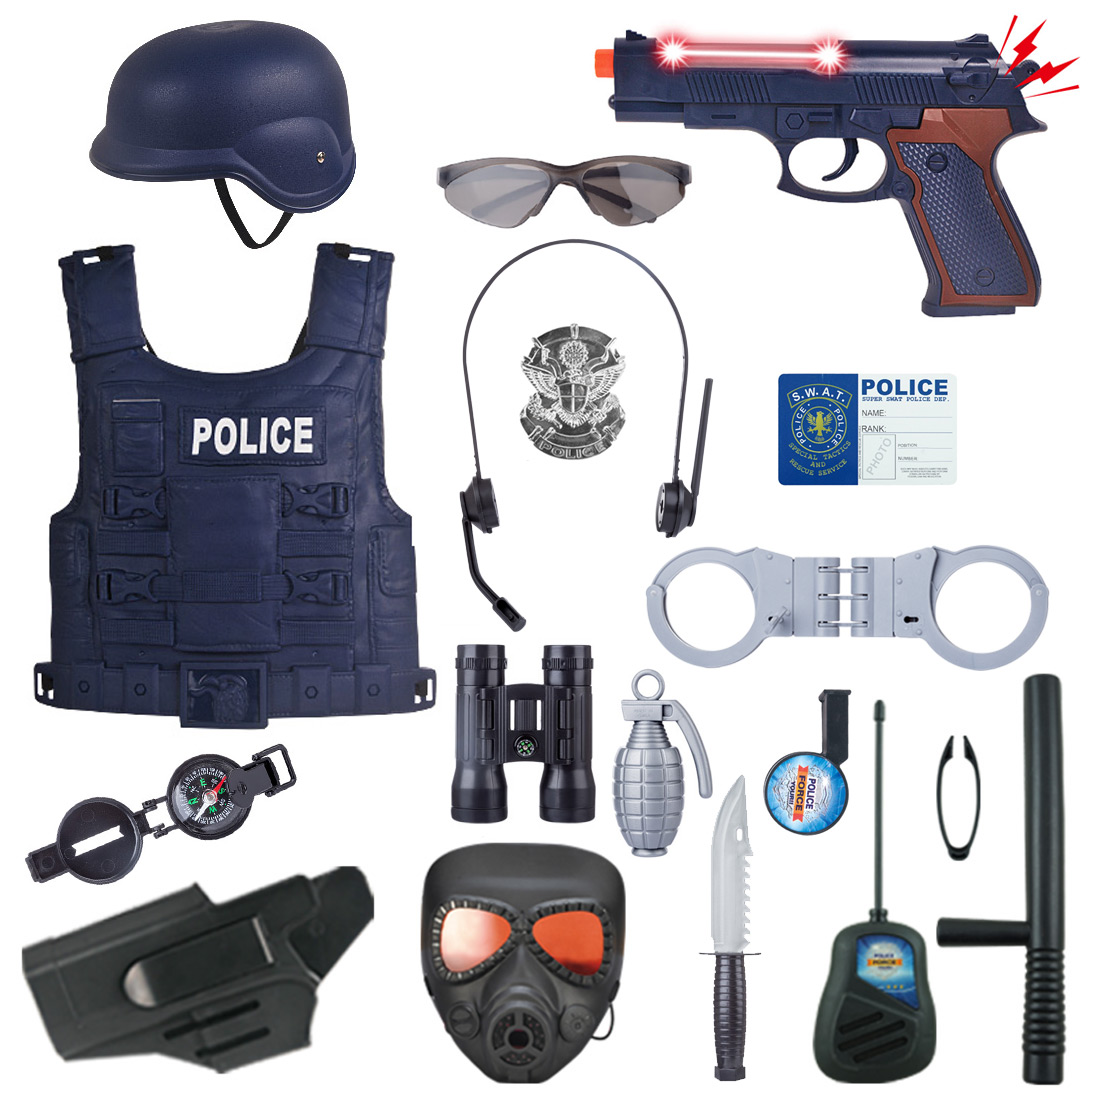 18Pcs/Set Children Pretend Play Police Officer Toy Props Police Role Play Kit Cop Toy Set For Fancy Dress Children Role Playing